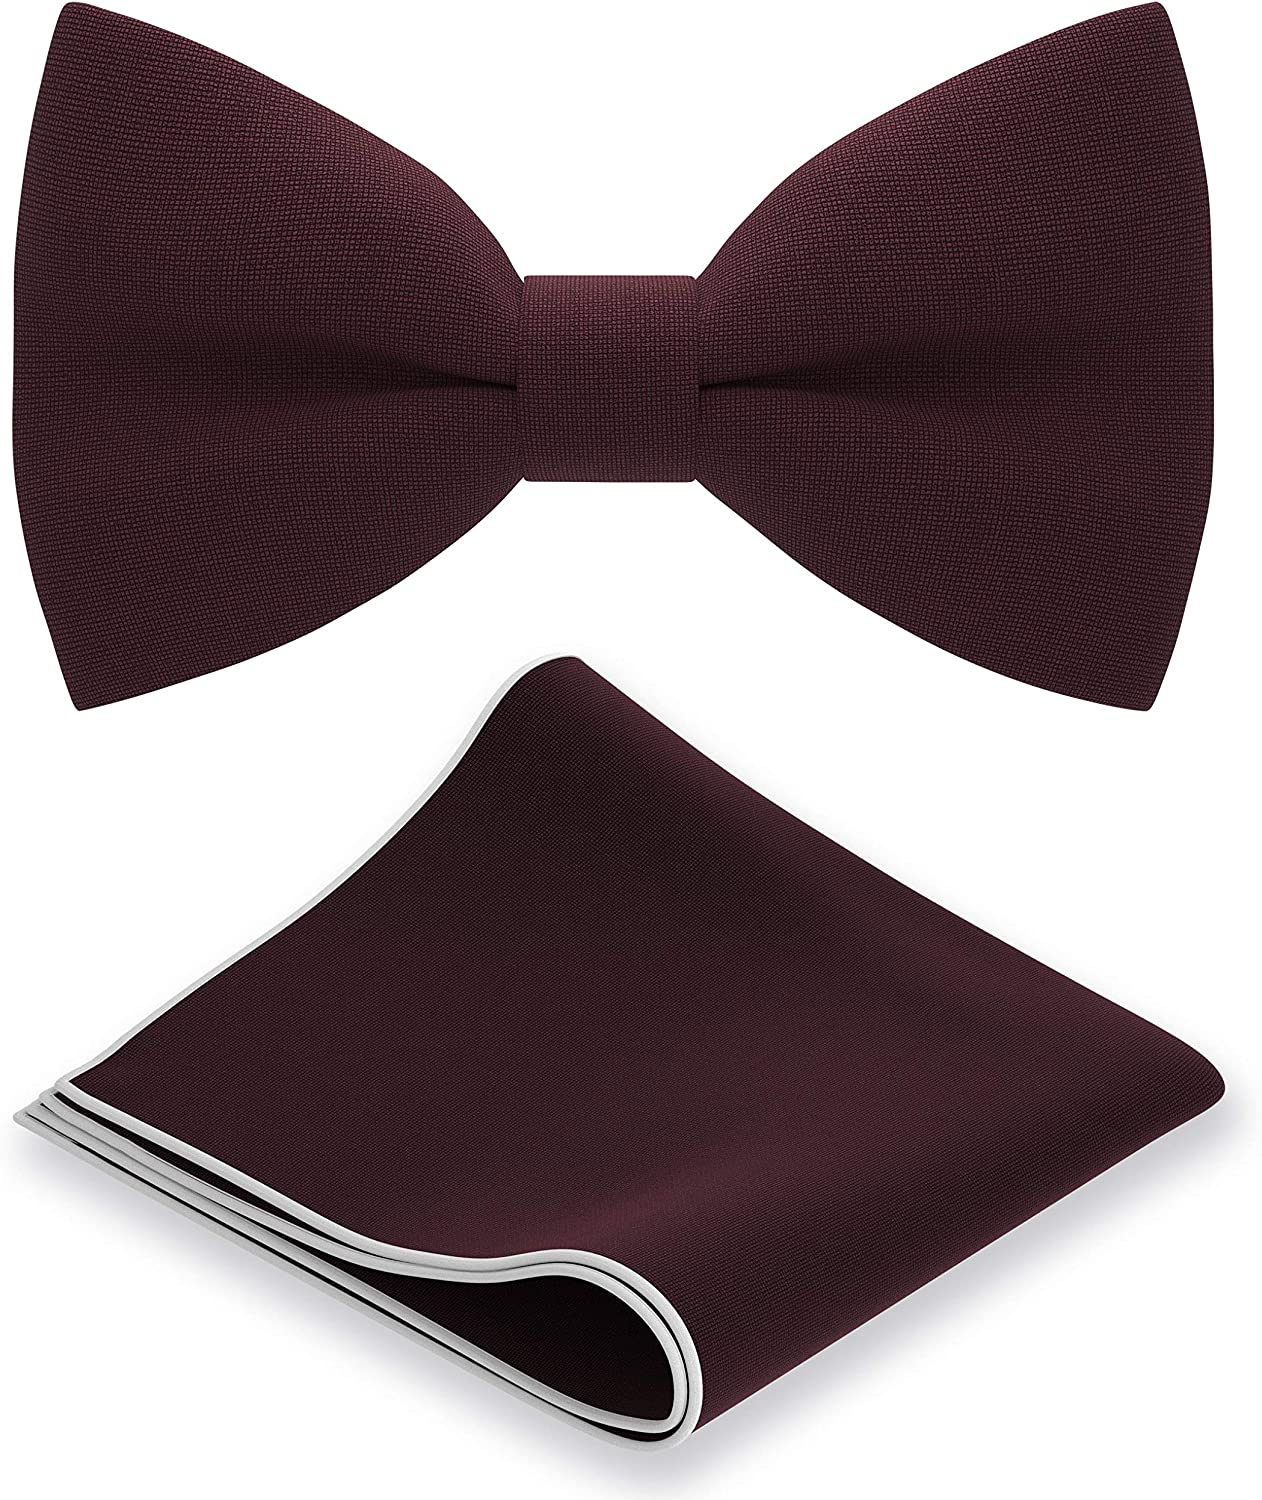 Classic Pre-Tied Bow Tie Set Formal Pocket Square Solid Hanky Tuxedo with Handkerchief set, by Bow Tie House